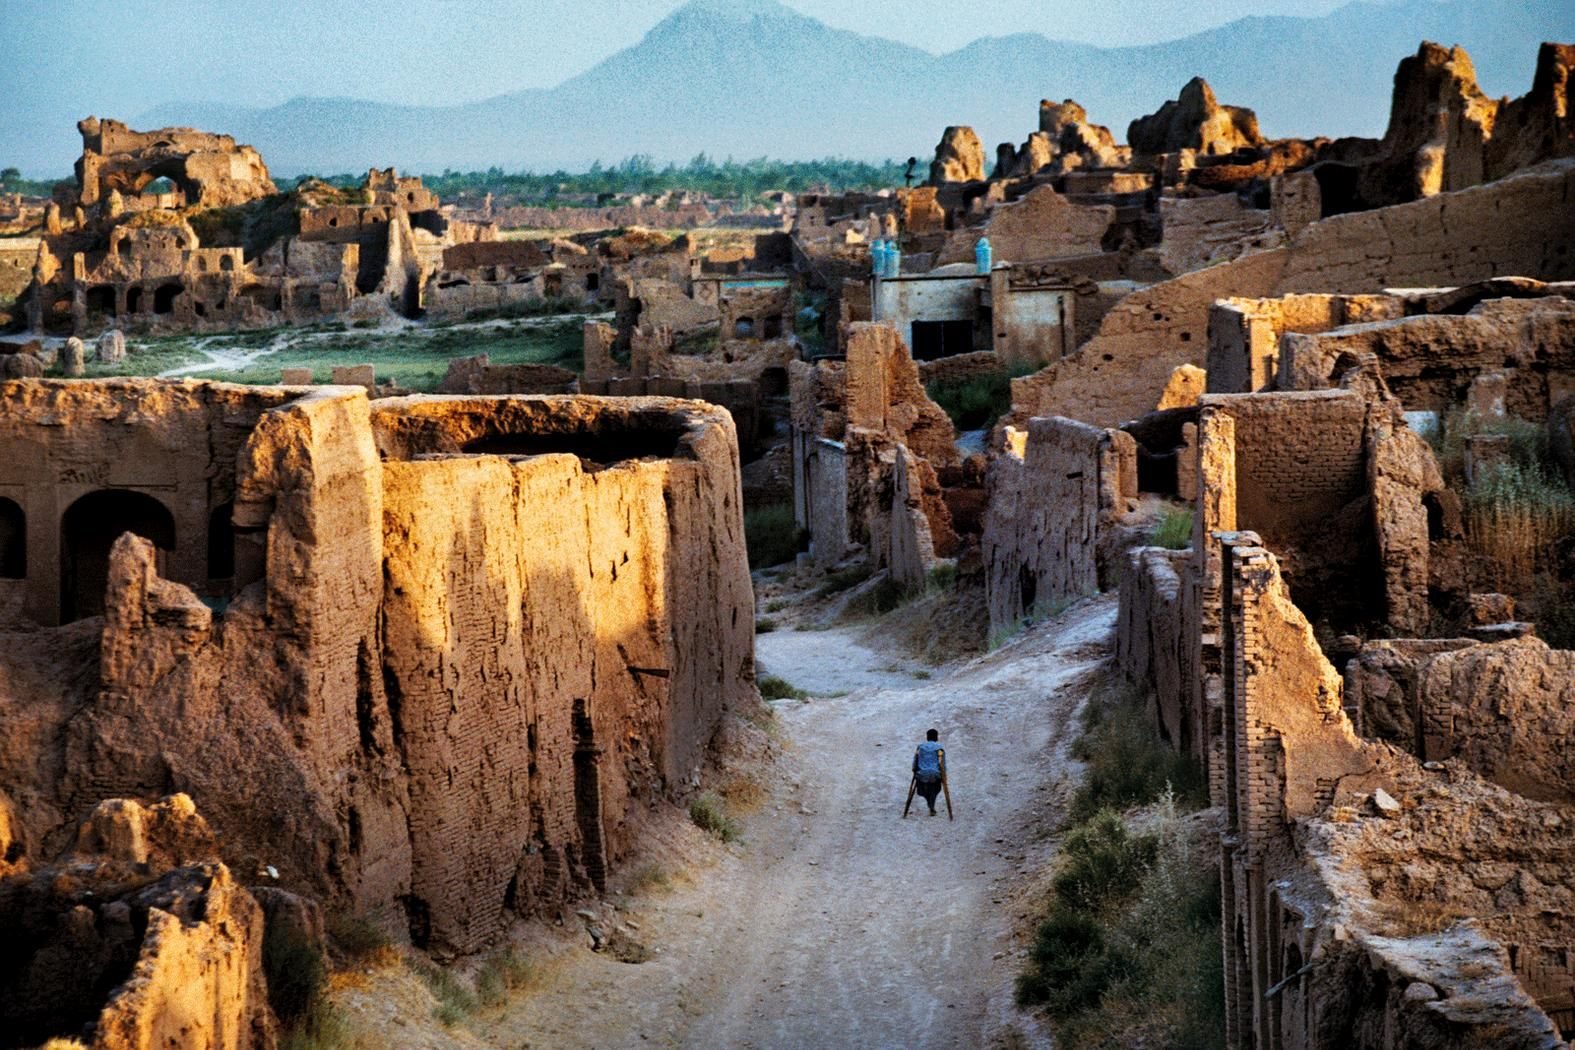 See The Beauty And Brutality Of Life In Afghanistan Afghanistan Culture Afghanistan Steve Mccurry